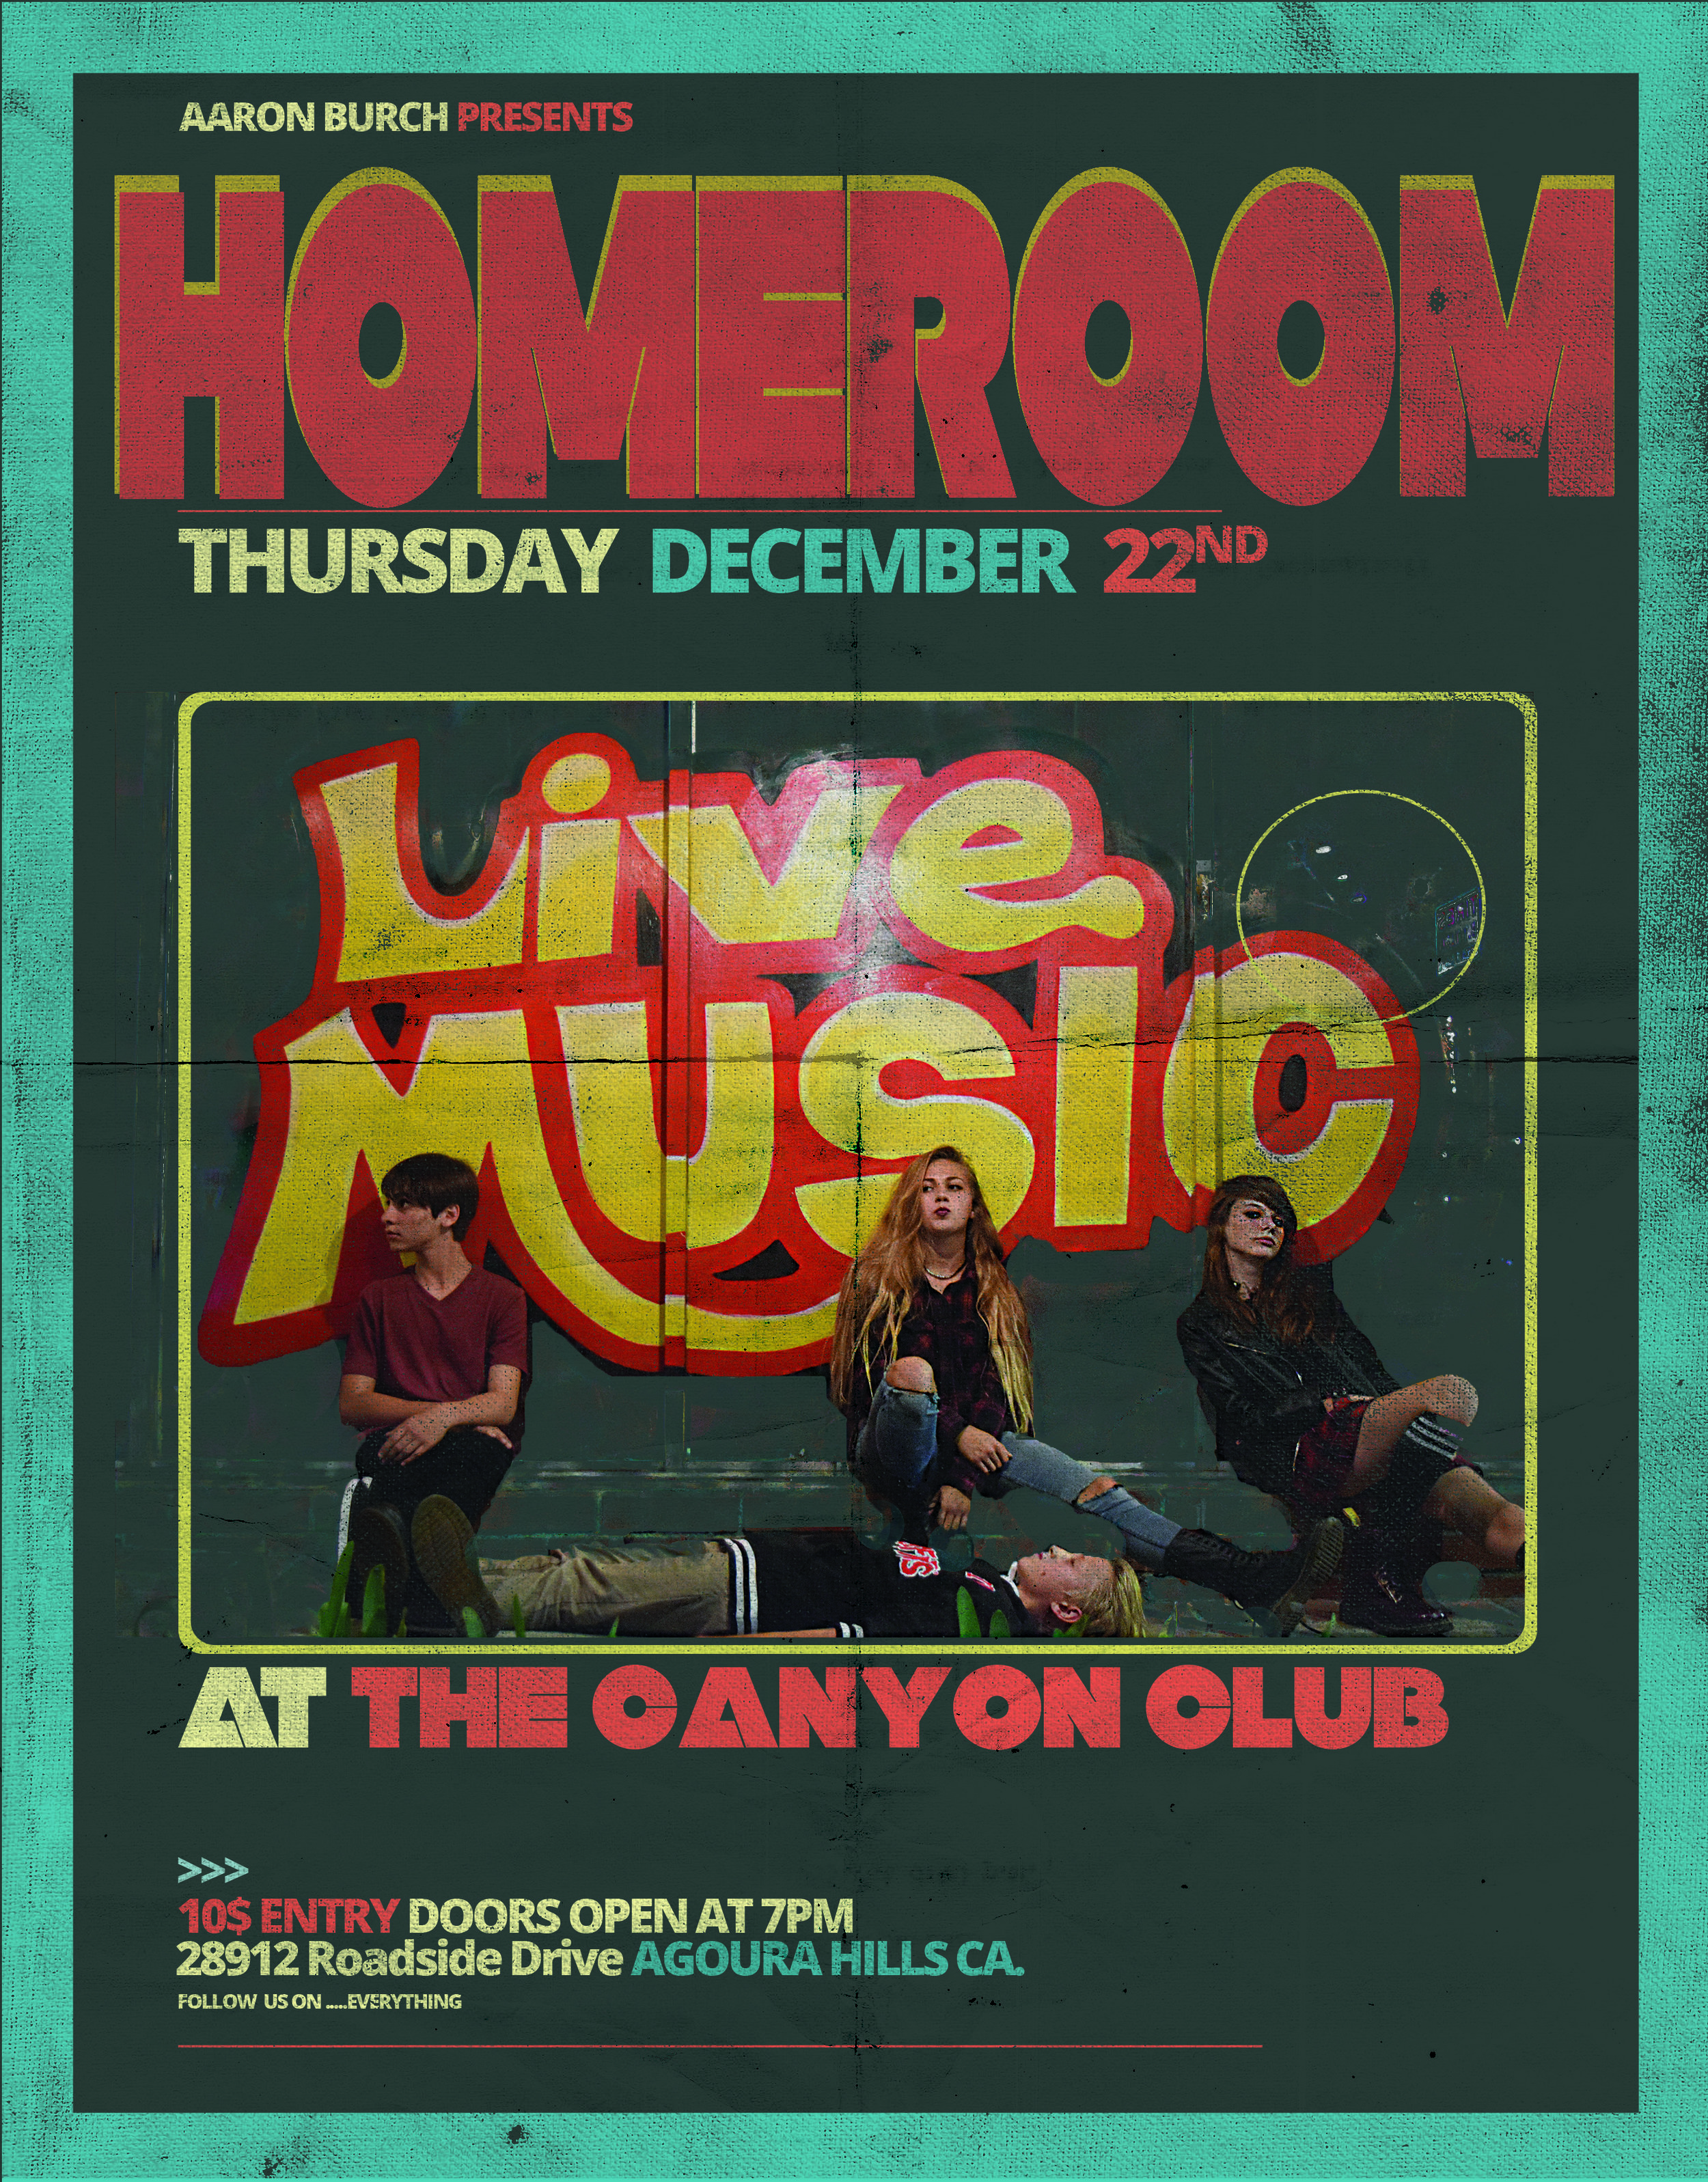 Home Room Canyon Club Flyer.jpg